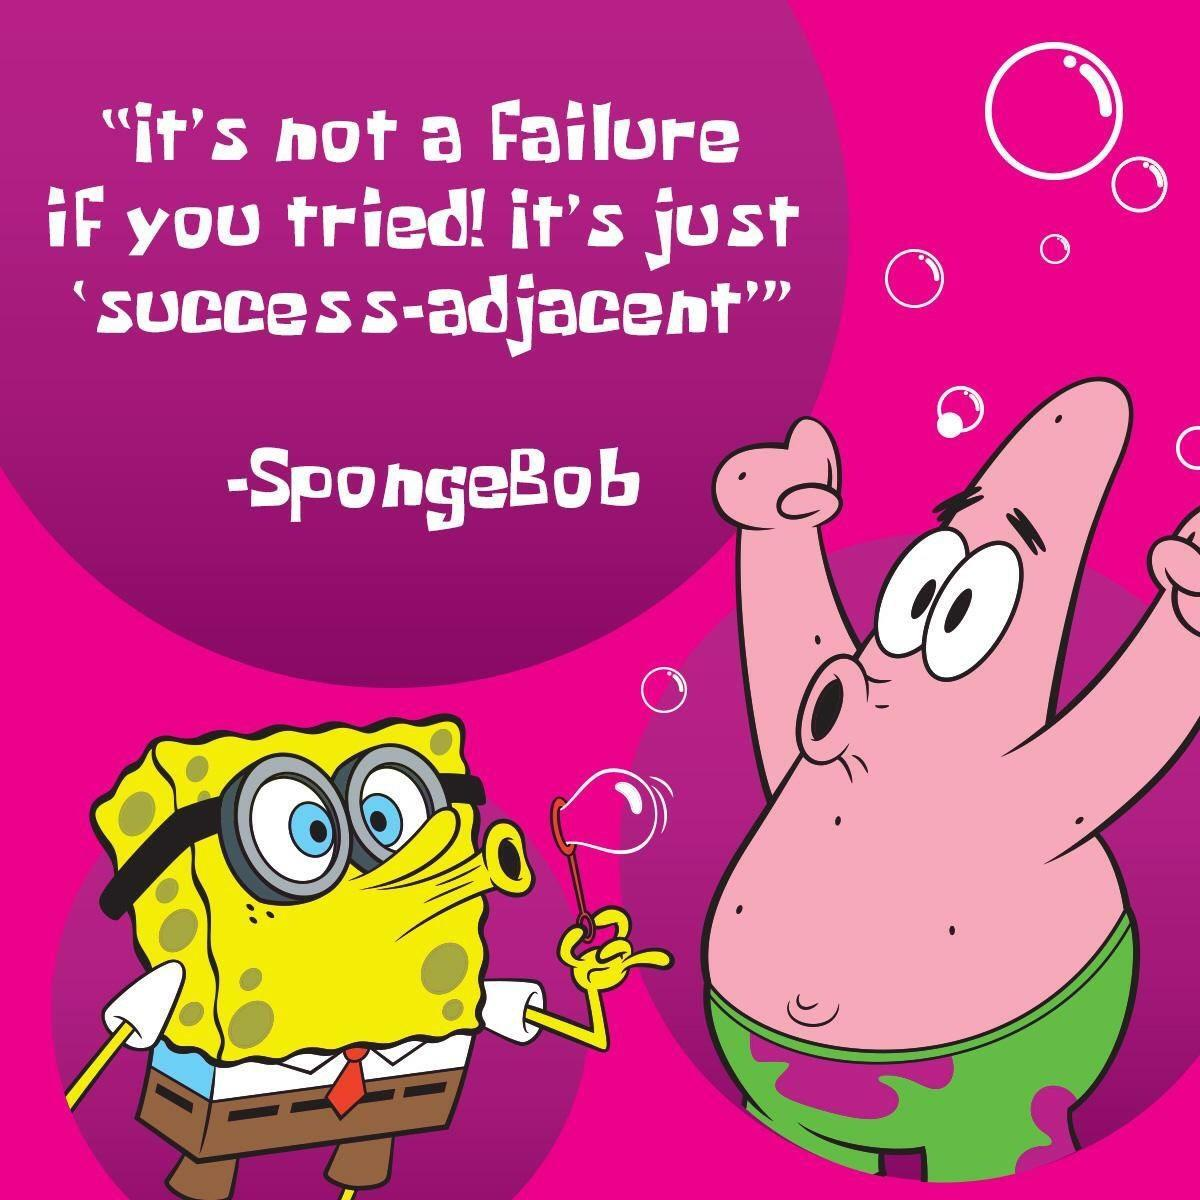 [Image] Wise words from the sponge himself